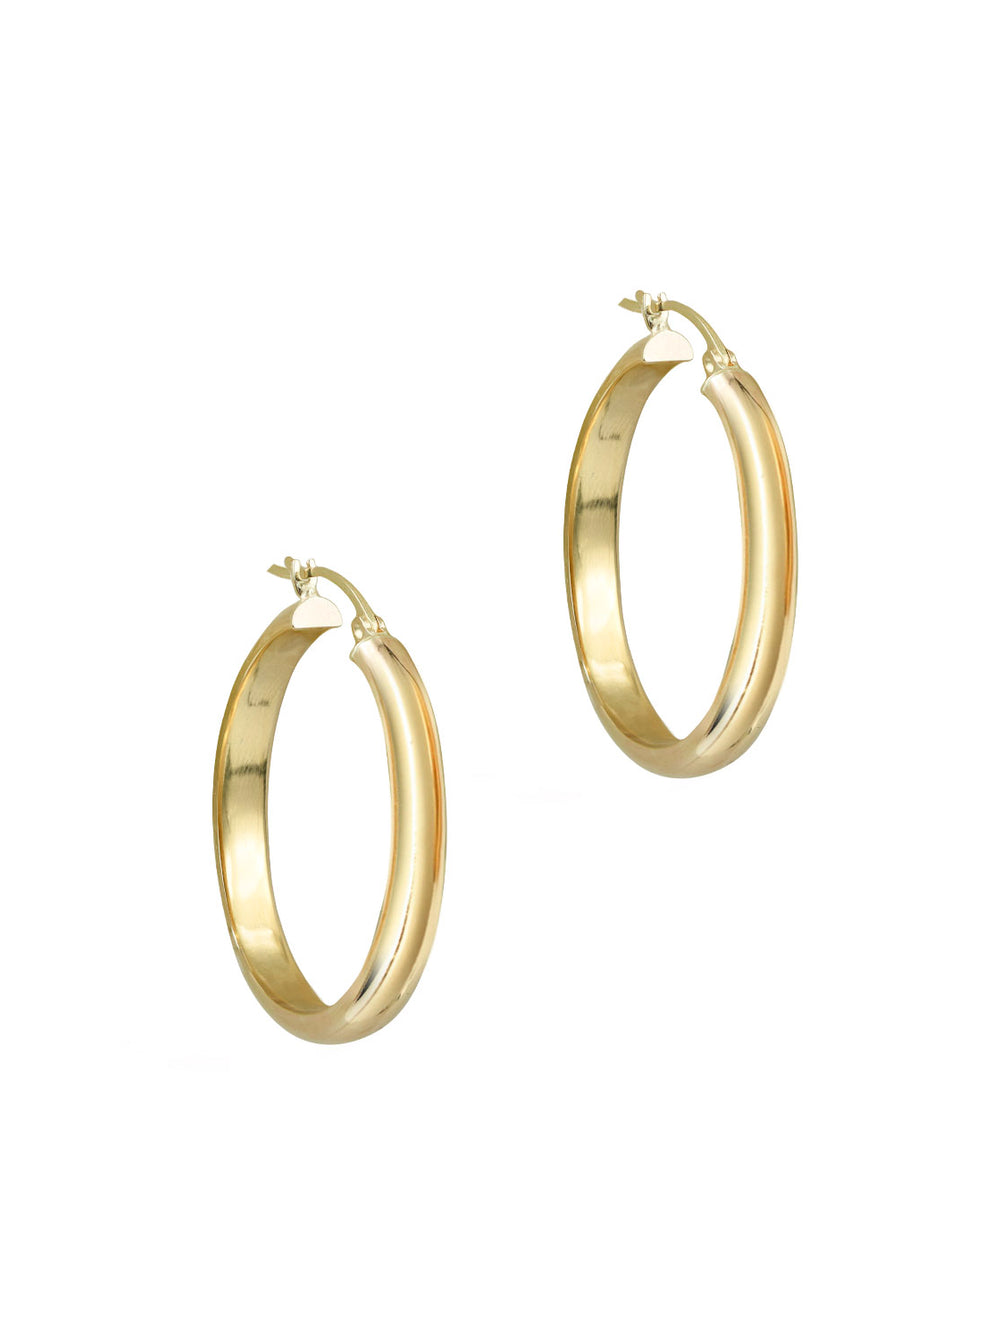 THE 10KT LOLA HOOPS (MEDIUM)